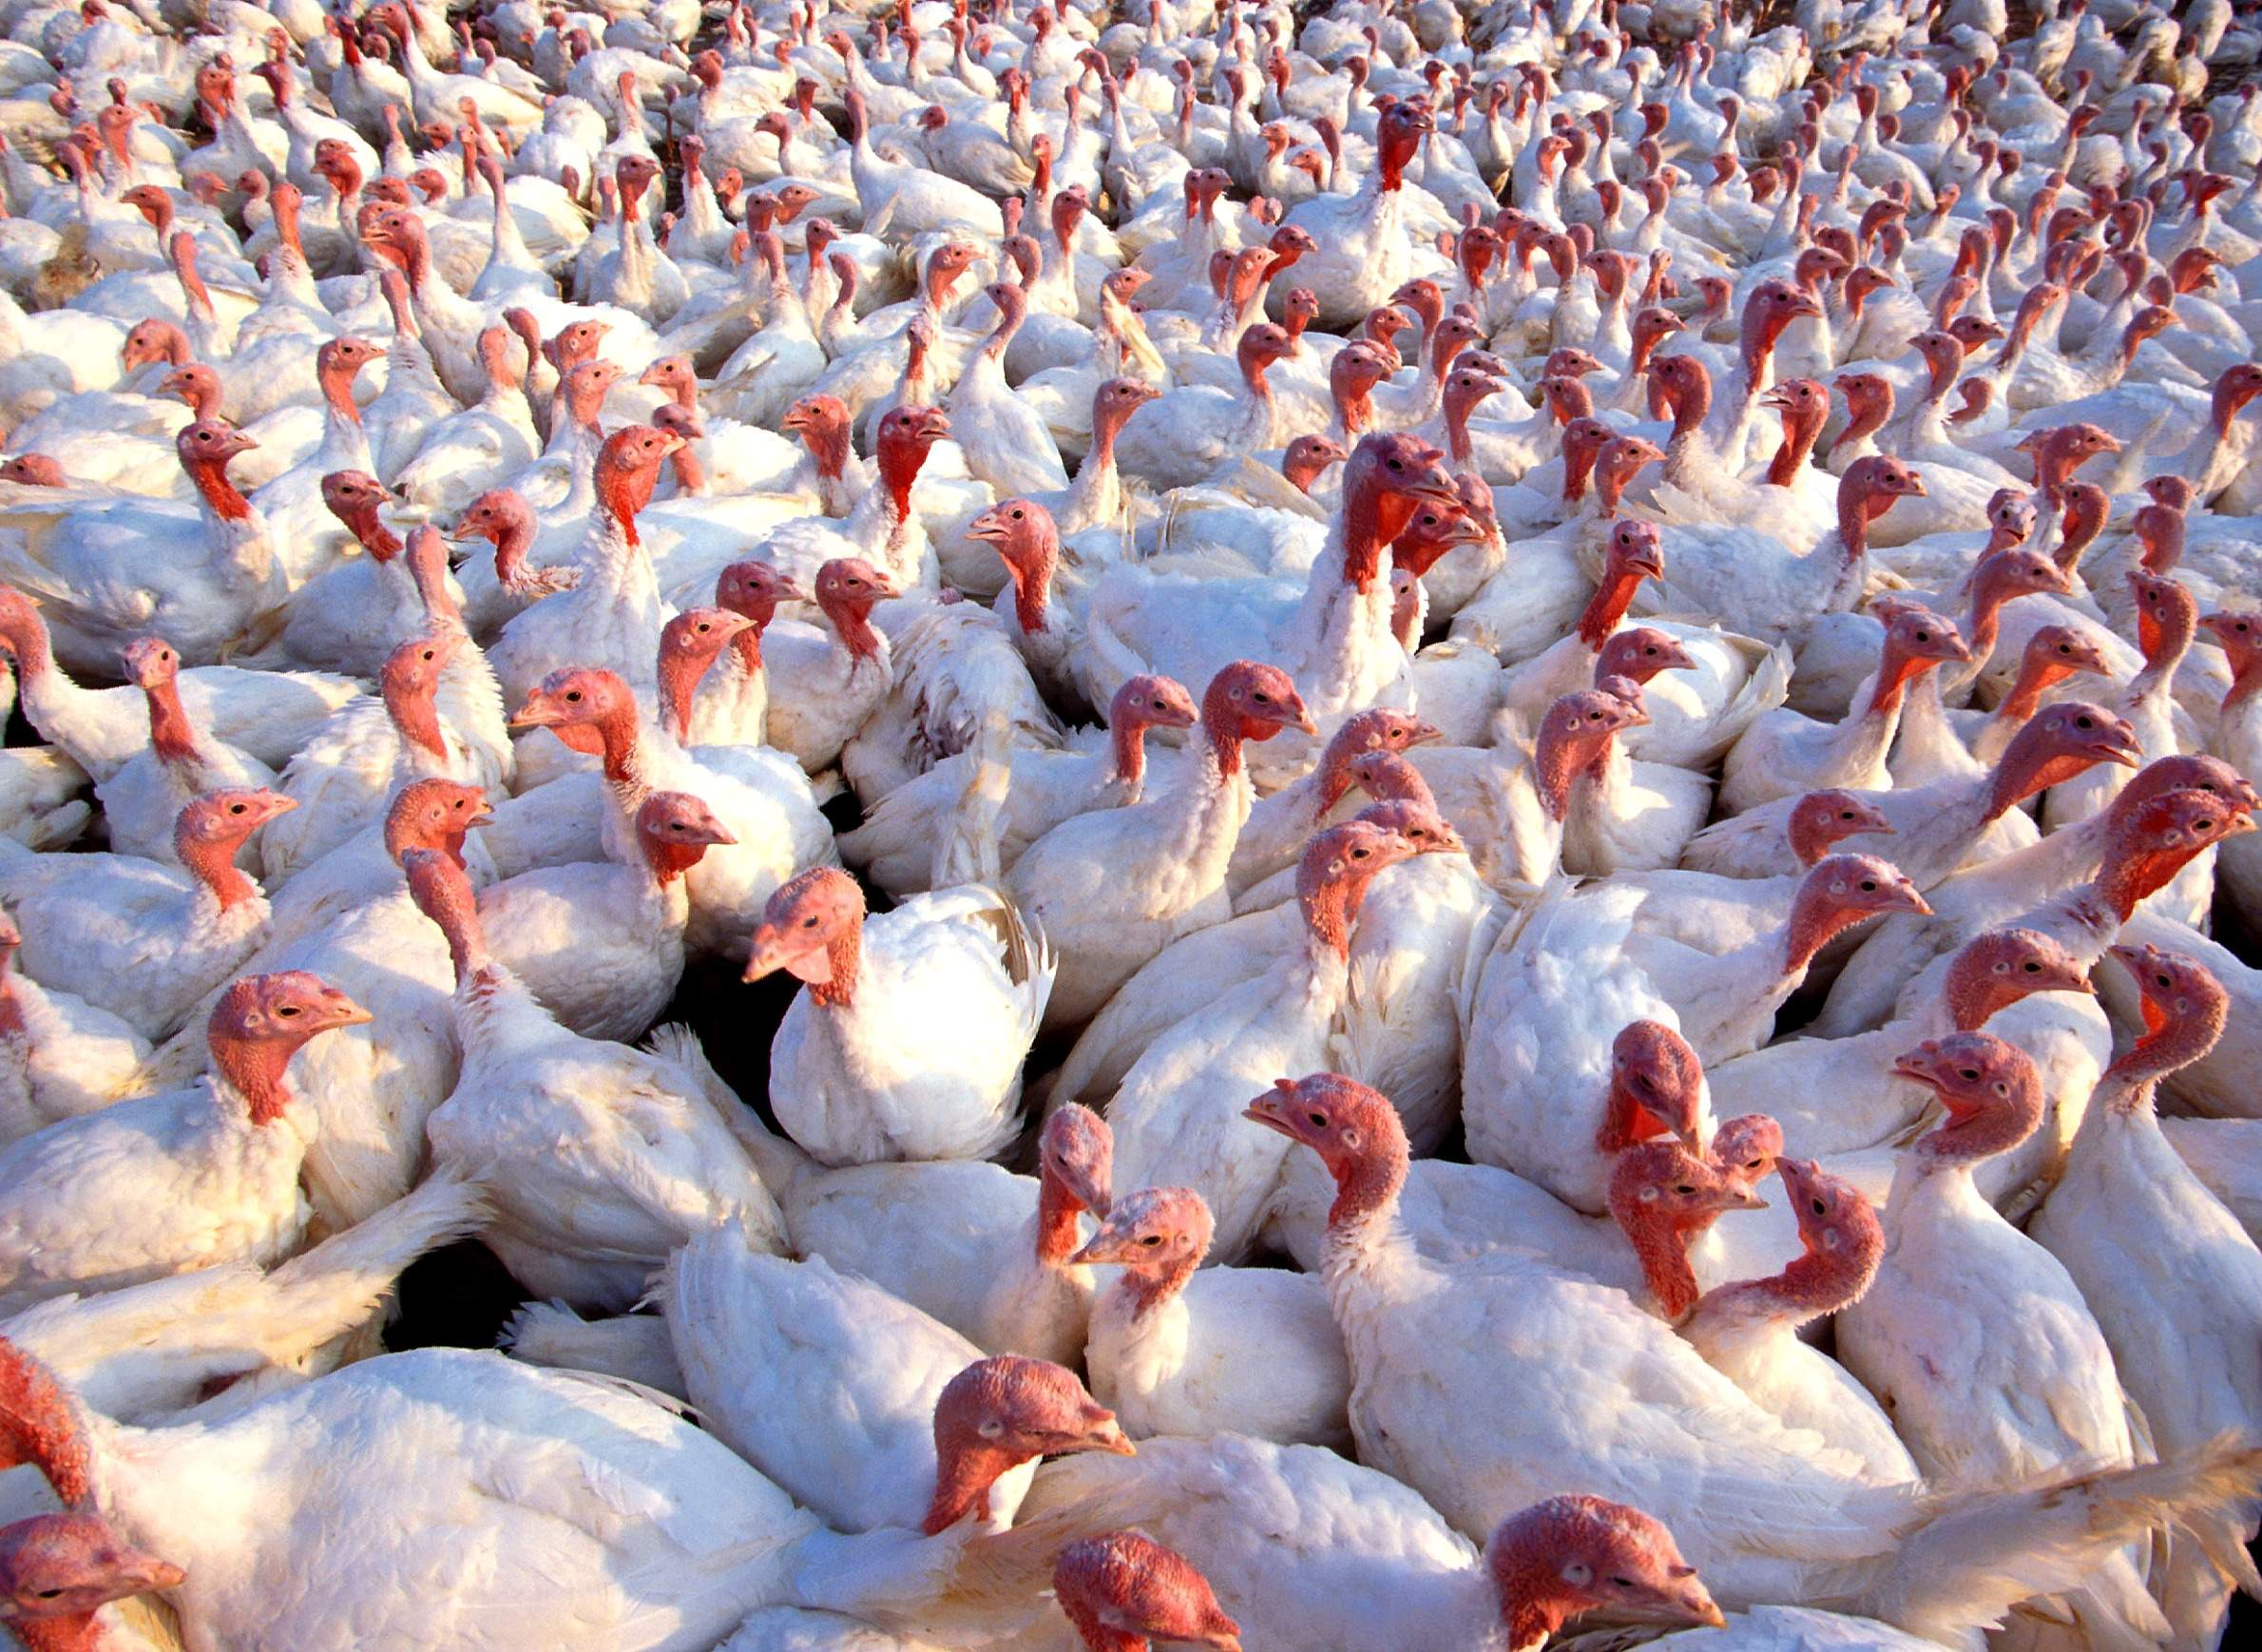 Avian Flu Confirmed at Western Kentucky Poultry Farm